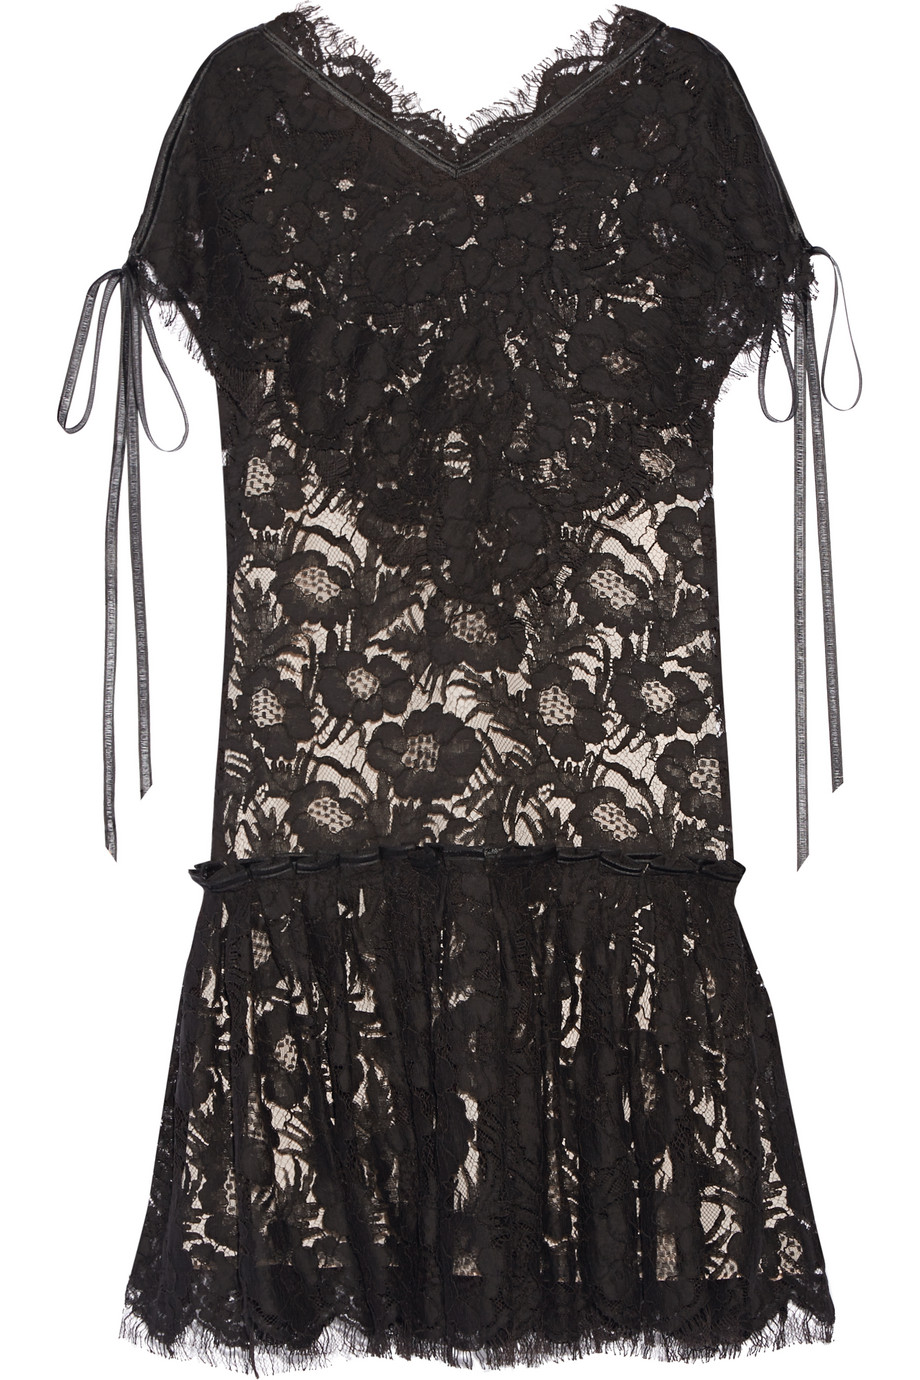 Wes Gordon Beatrix Corded Cotton-Blend Lace Mini Dress, Black, Women's - Floral, Size: 2